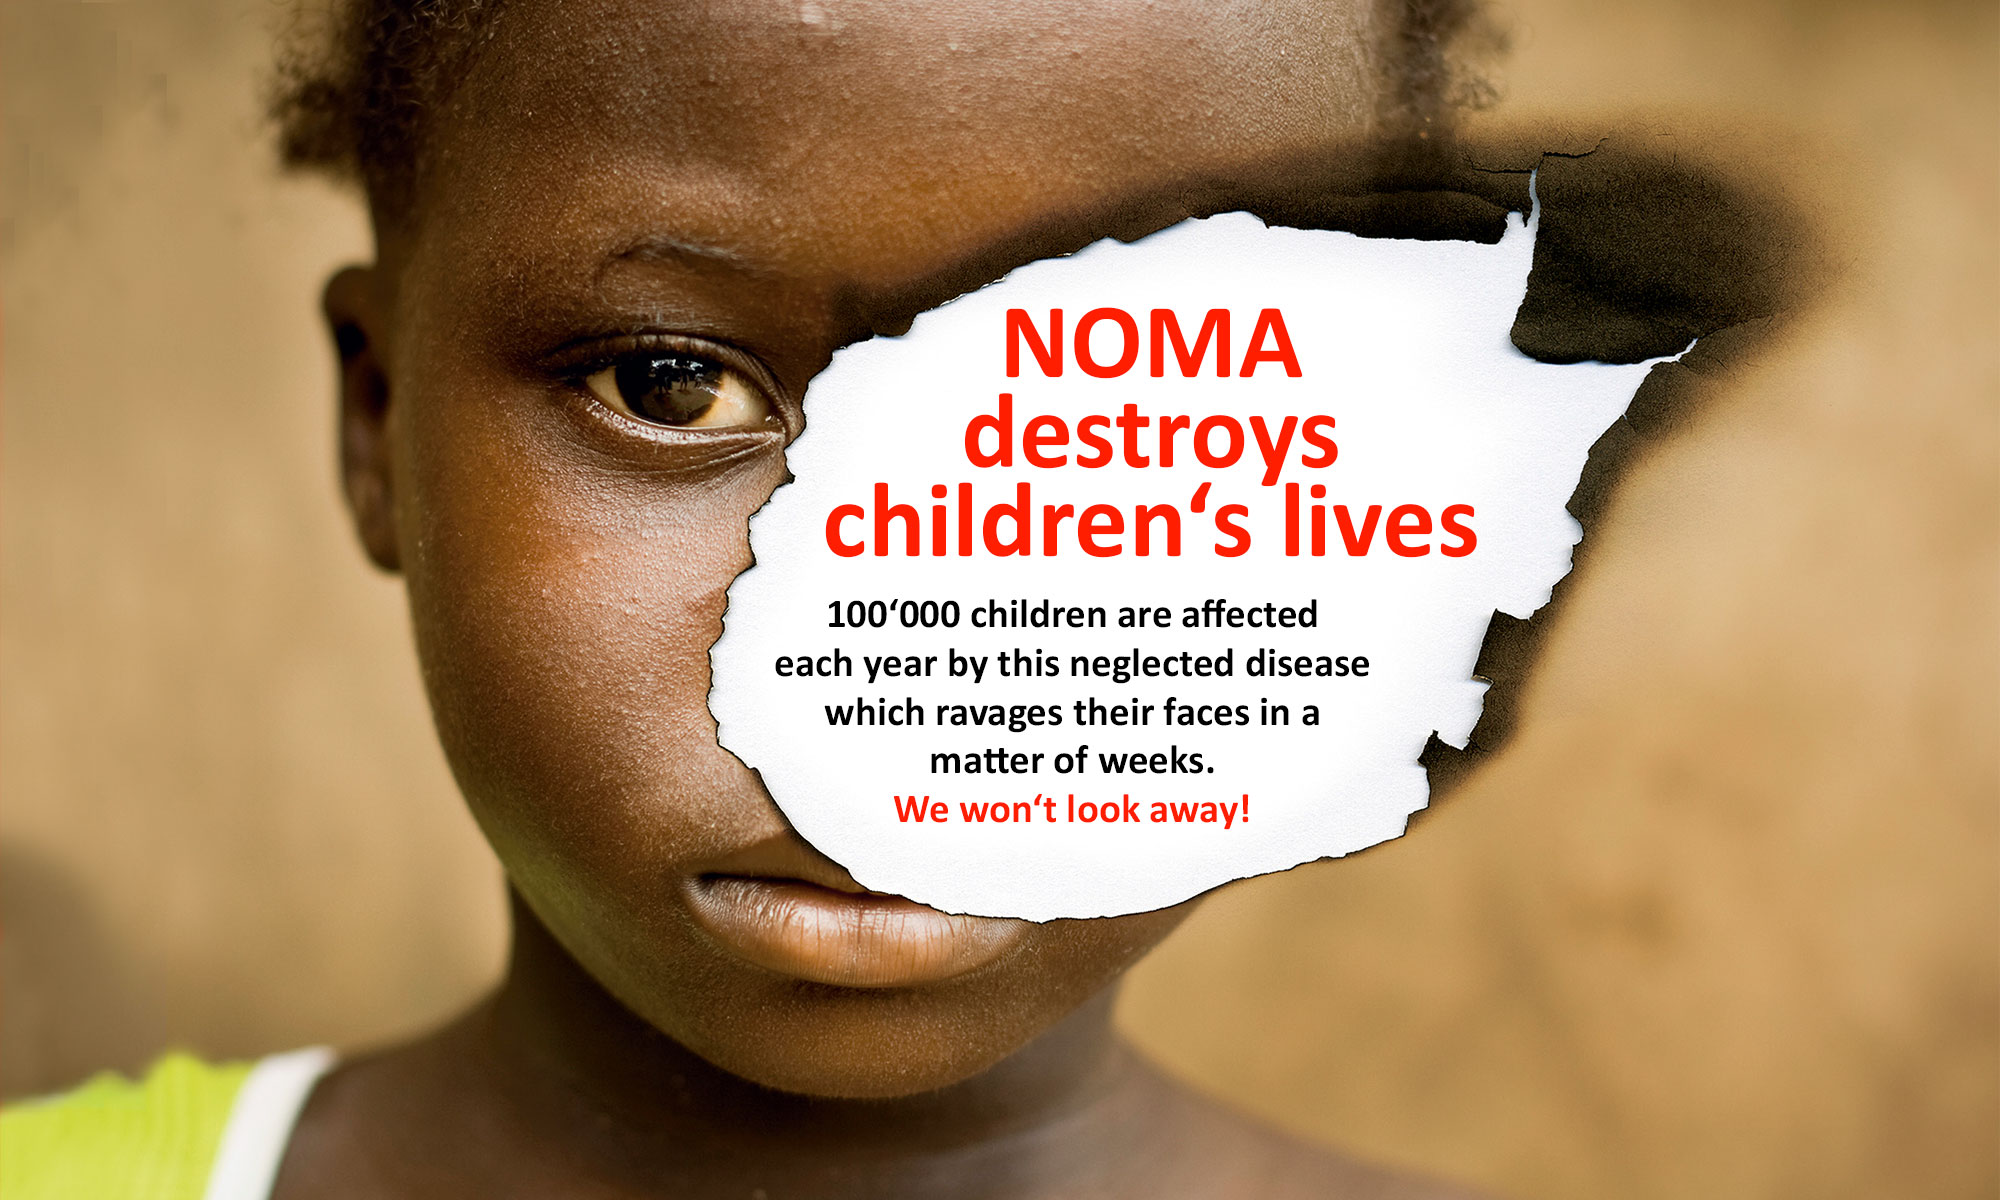 NOMA destroys children's lives.